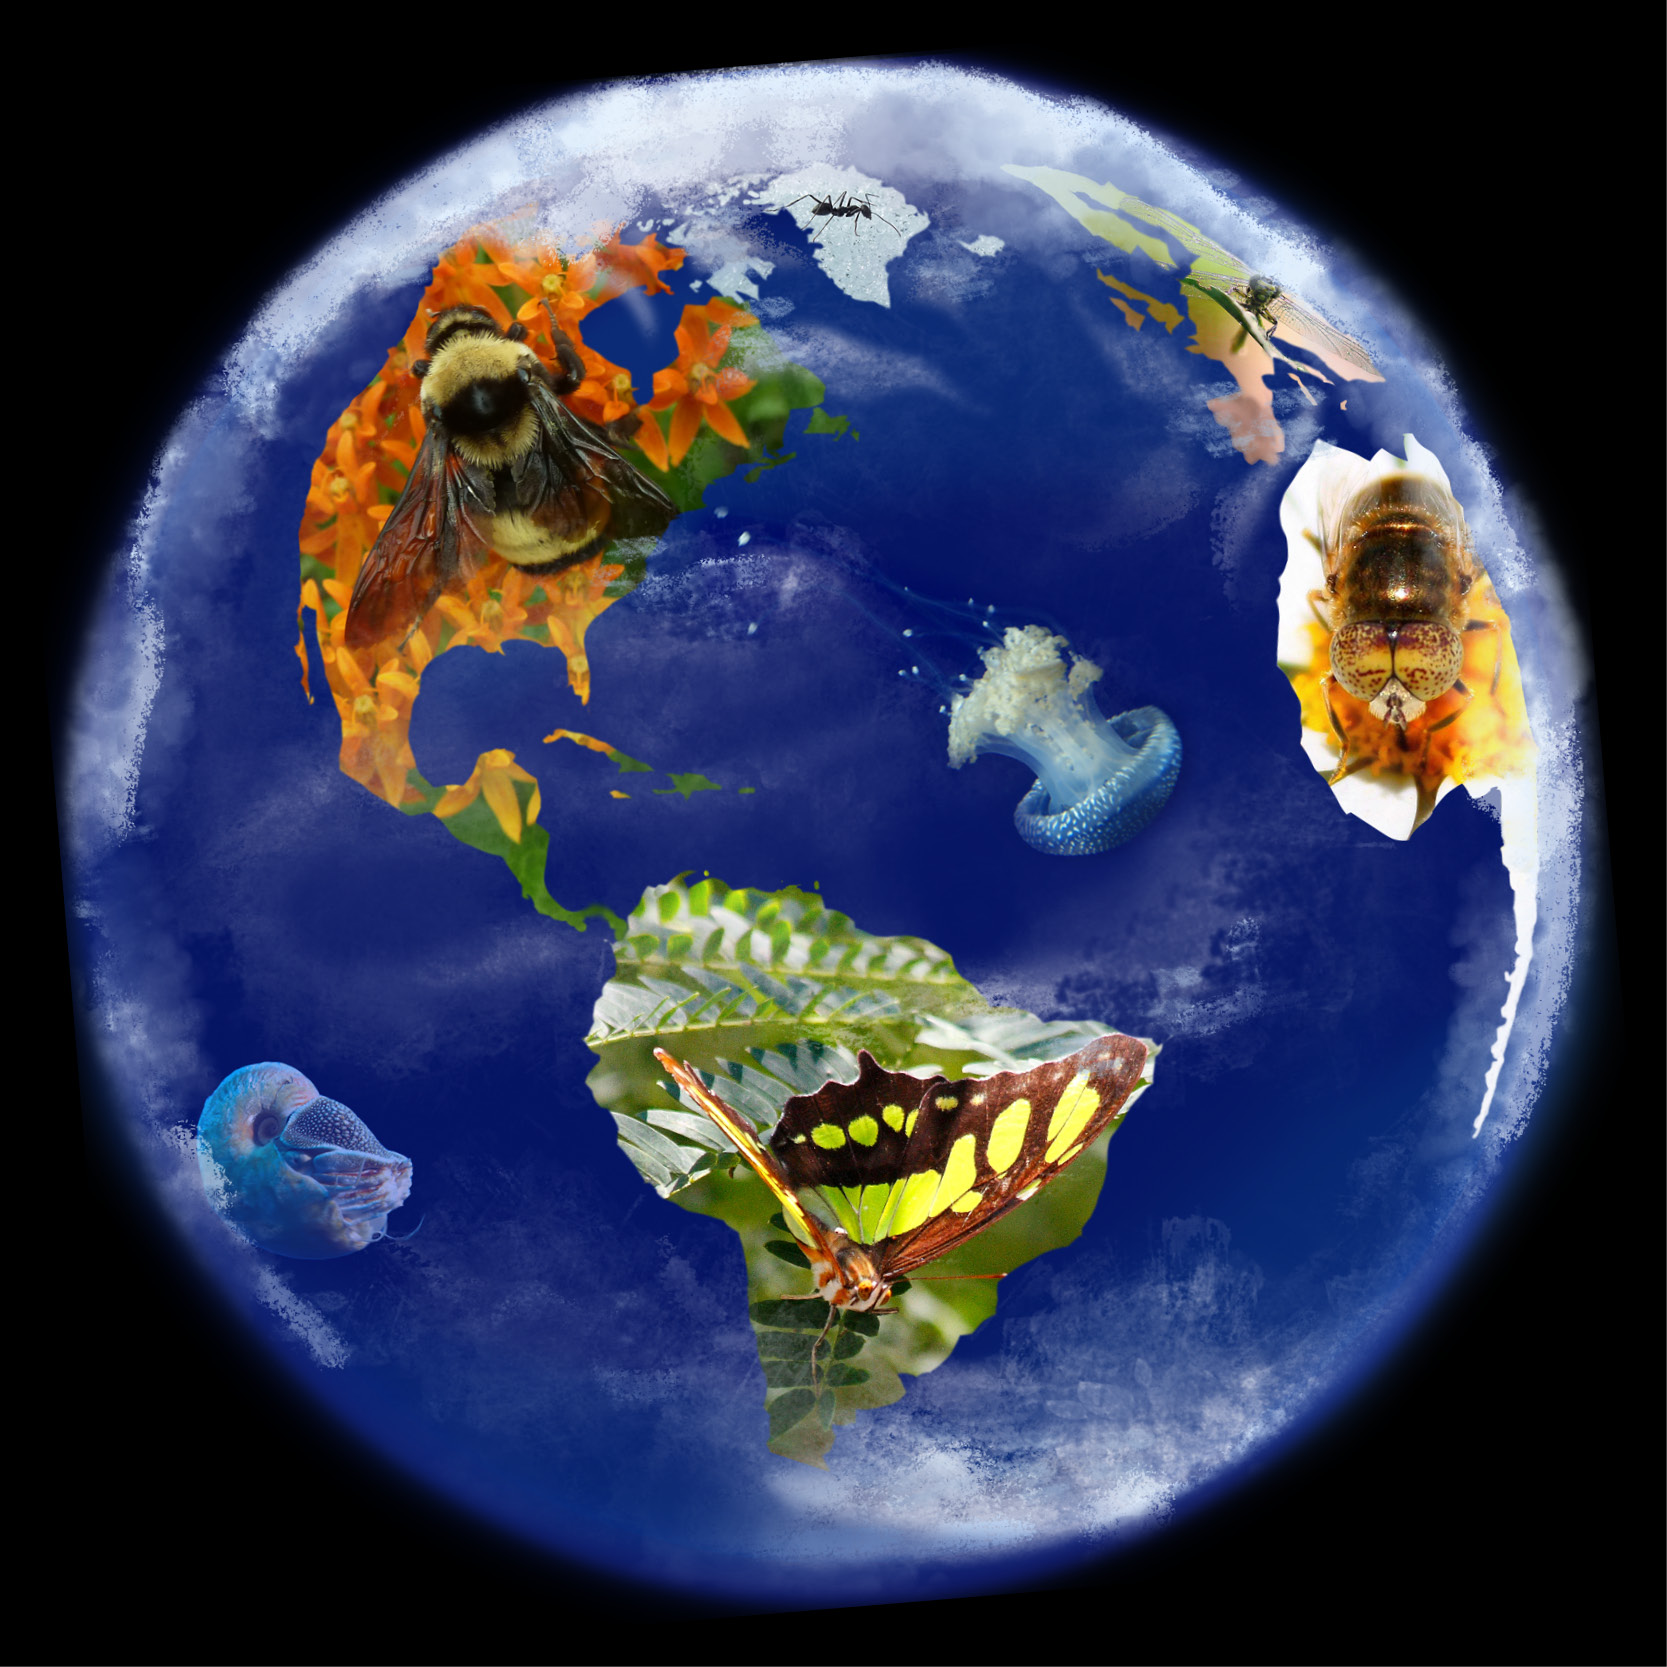 A globe with images of invertebrates, including a bumble bee on North America, and a butterfly on South America, that are photoshopped into the continents and oceans.